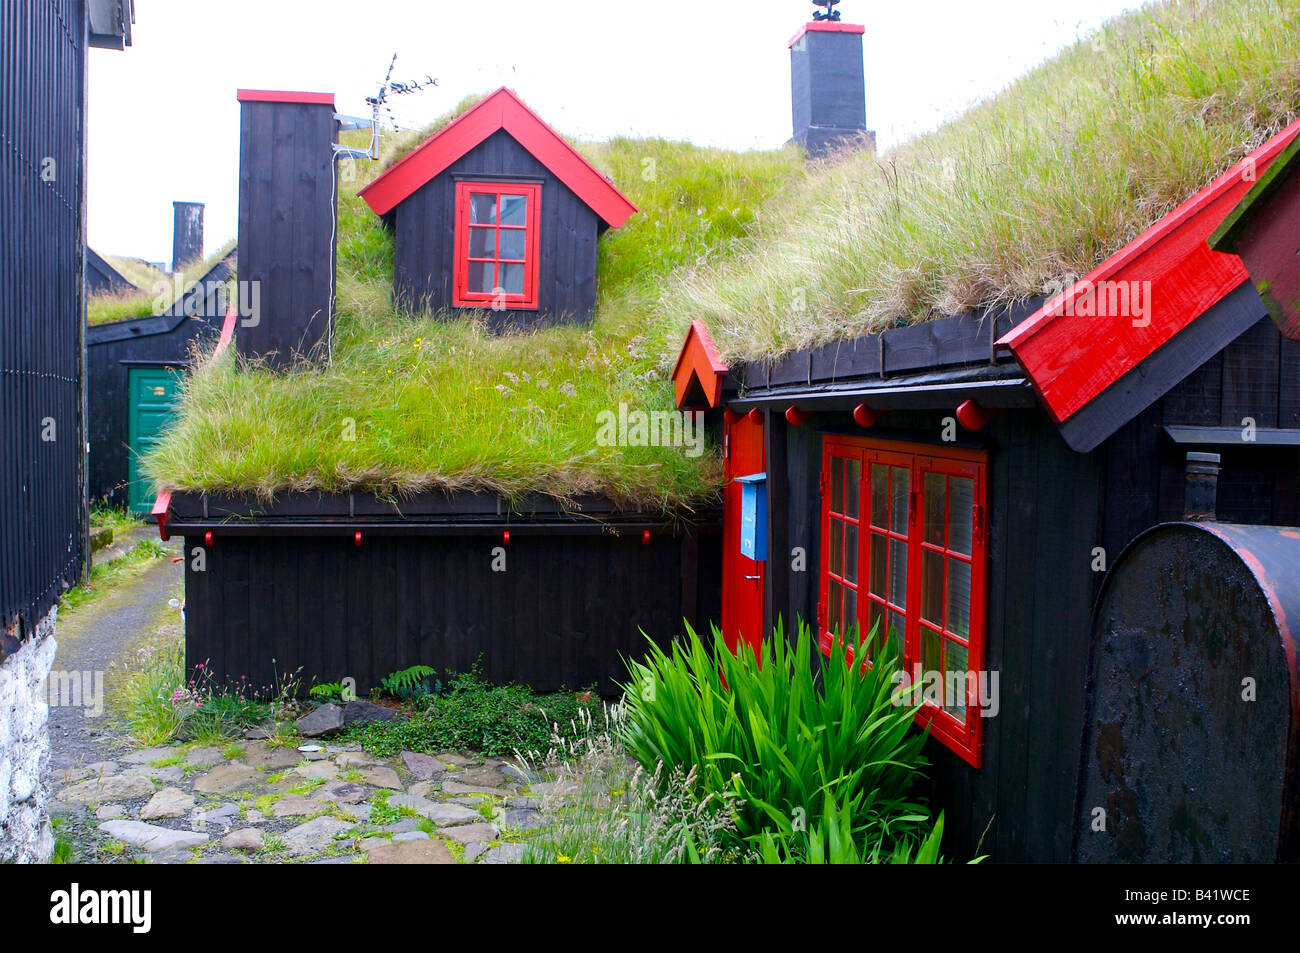 L'isolation de la toiture, chalet toop sous la forme d'herbe et le gazon - Iles Feroe Photo Stock